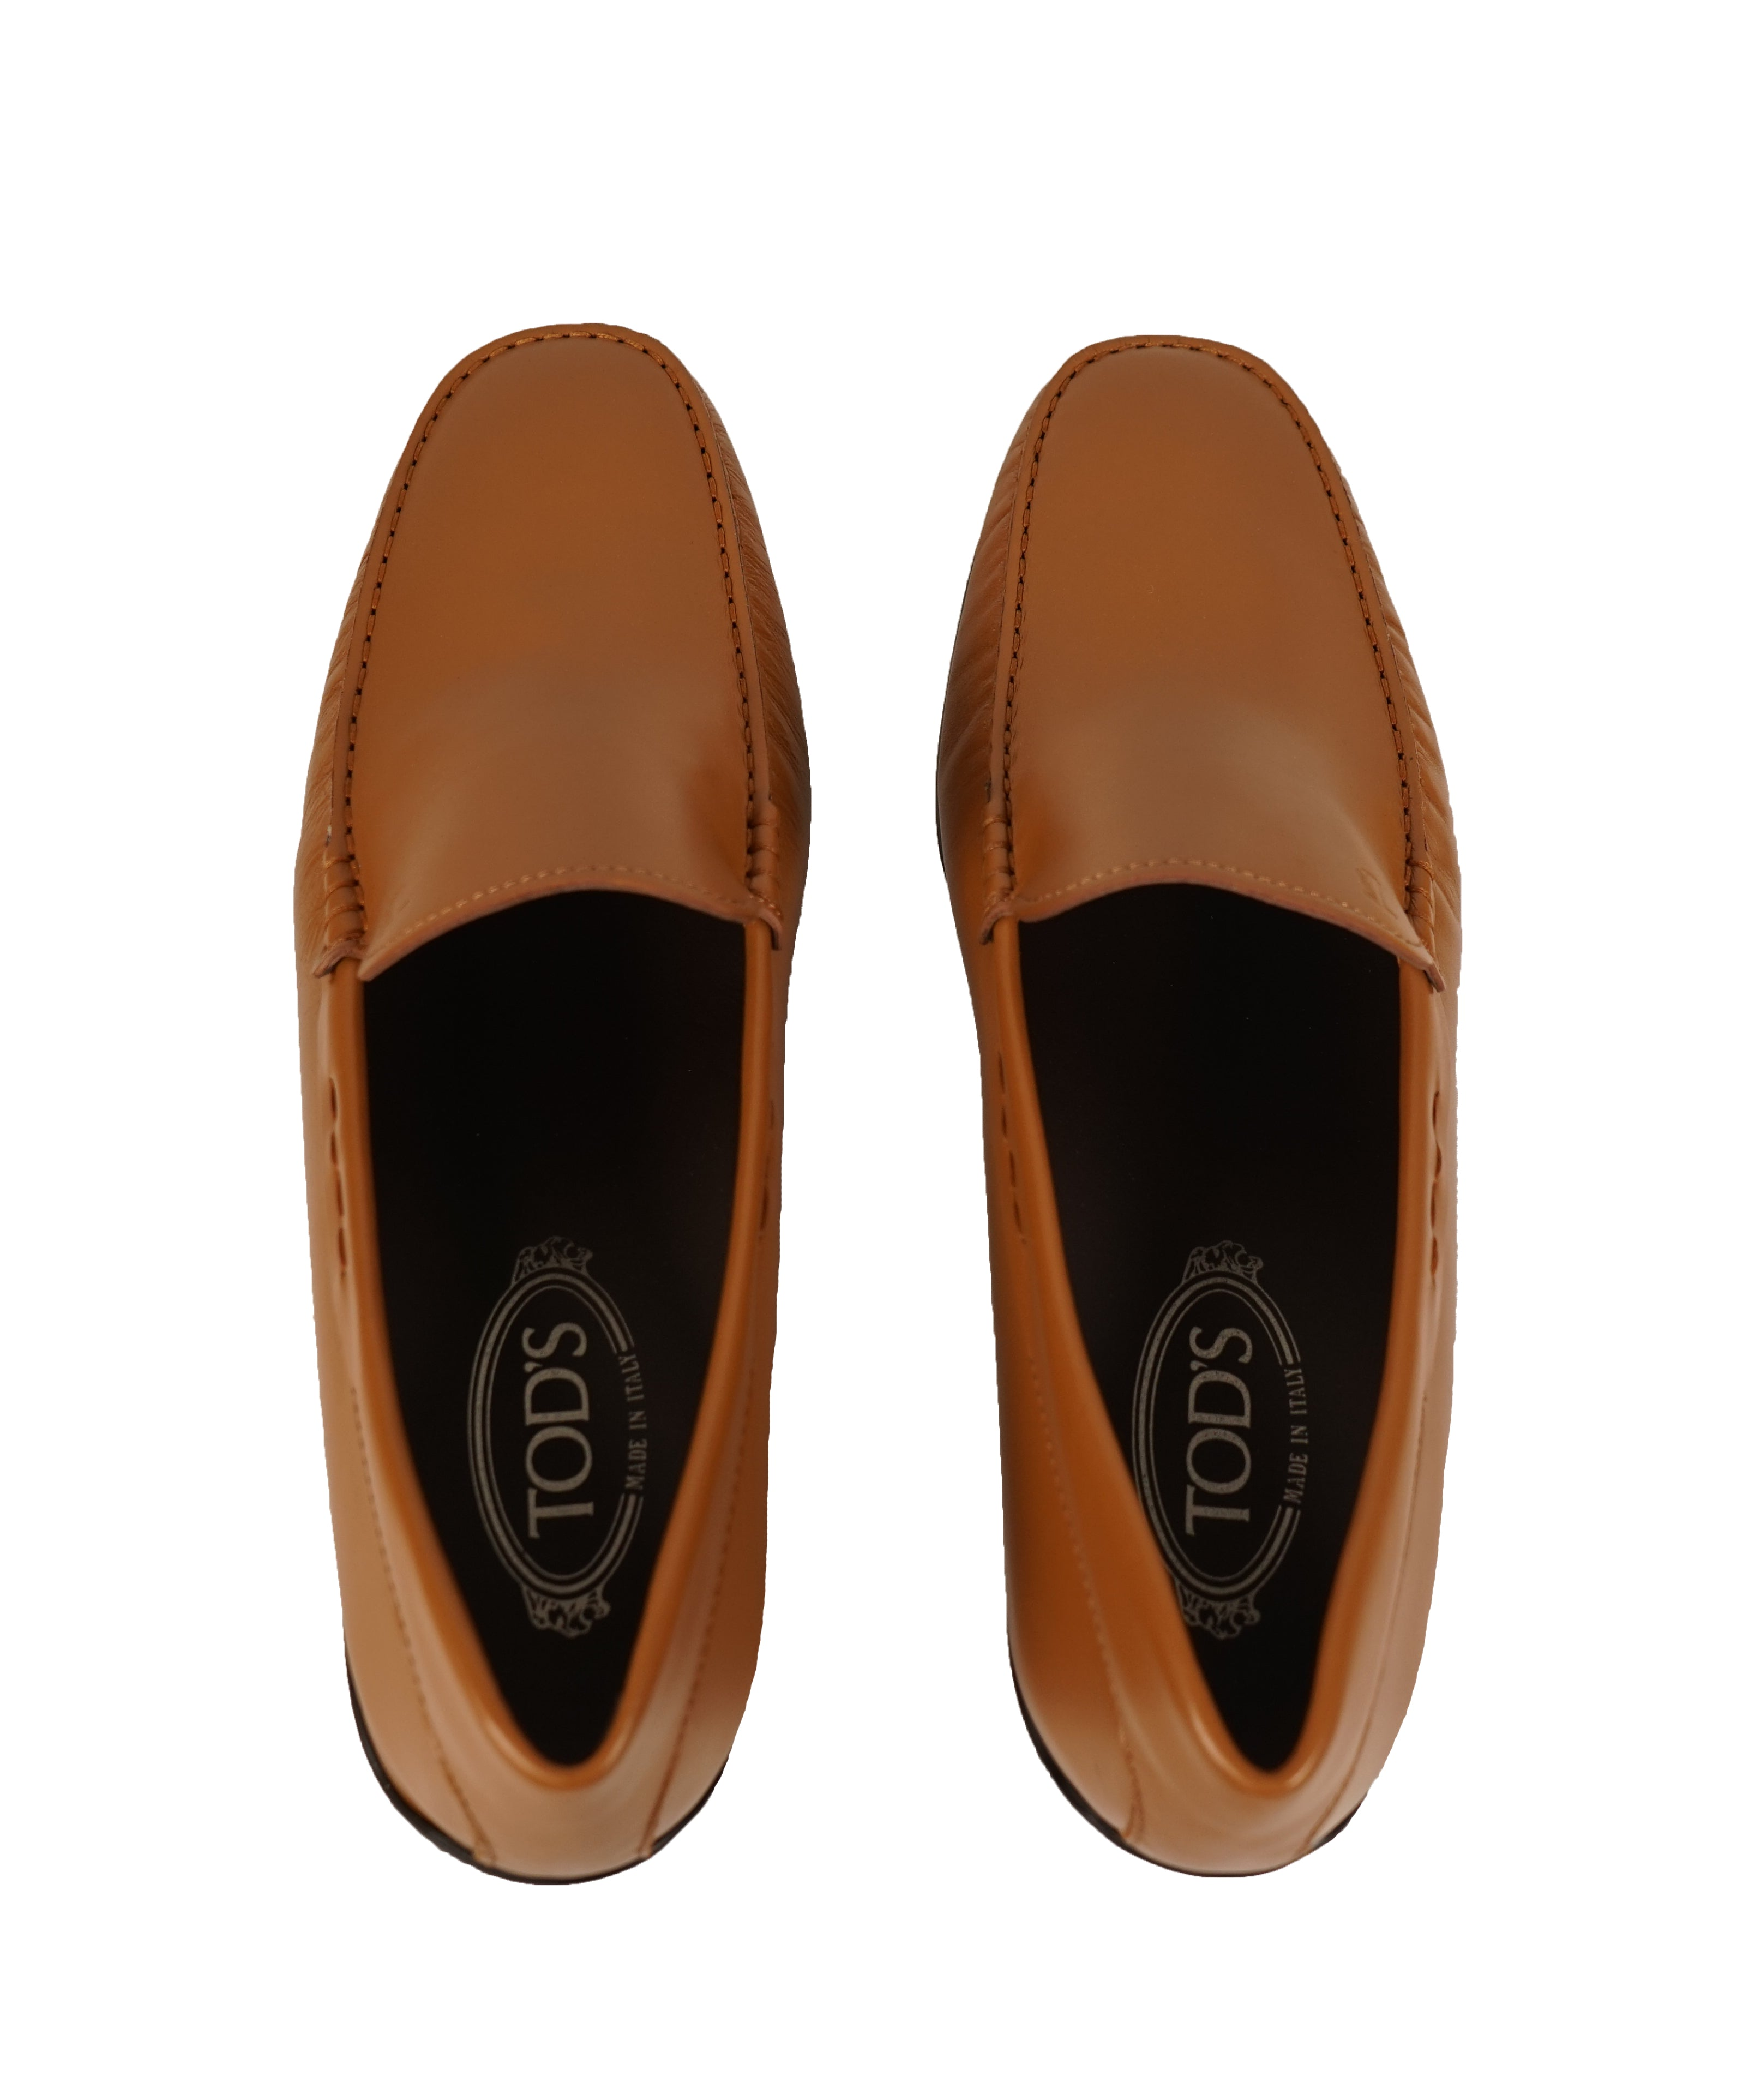 "TOD'S - Brown "" LOGO Gommini "" Vamp Engraved Italian Leather Loafers - 13"